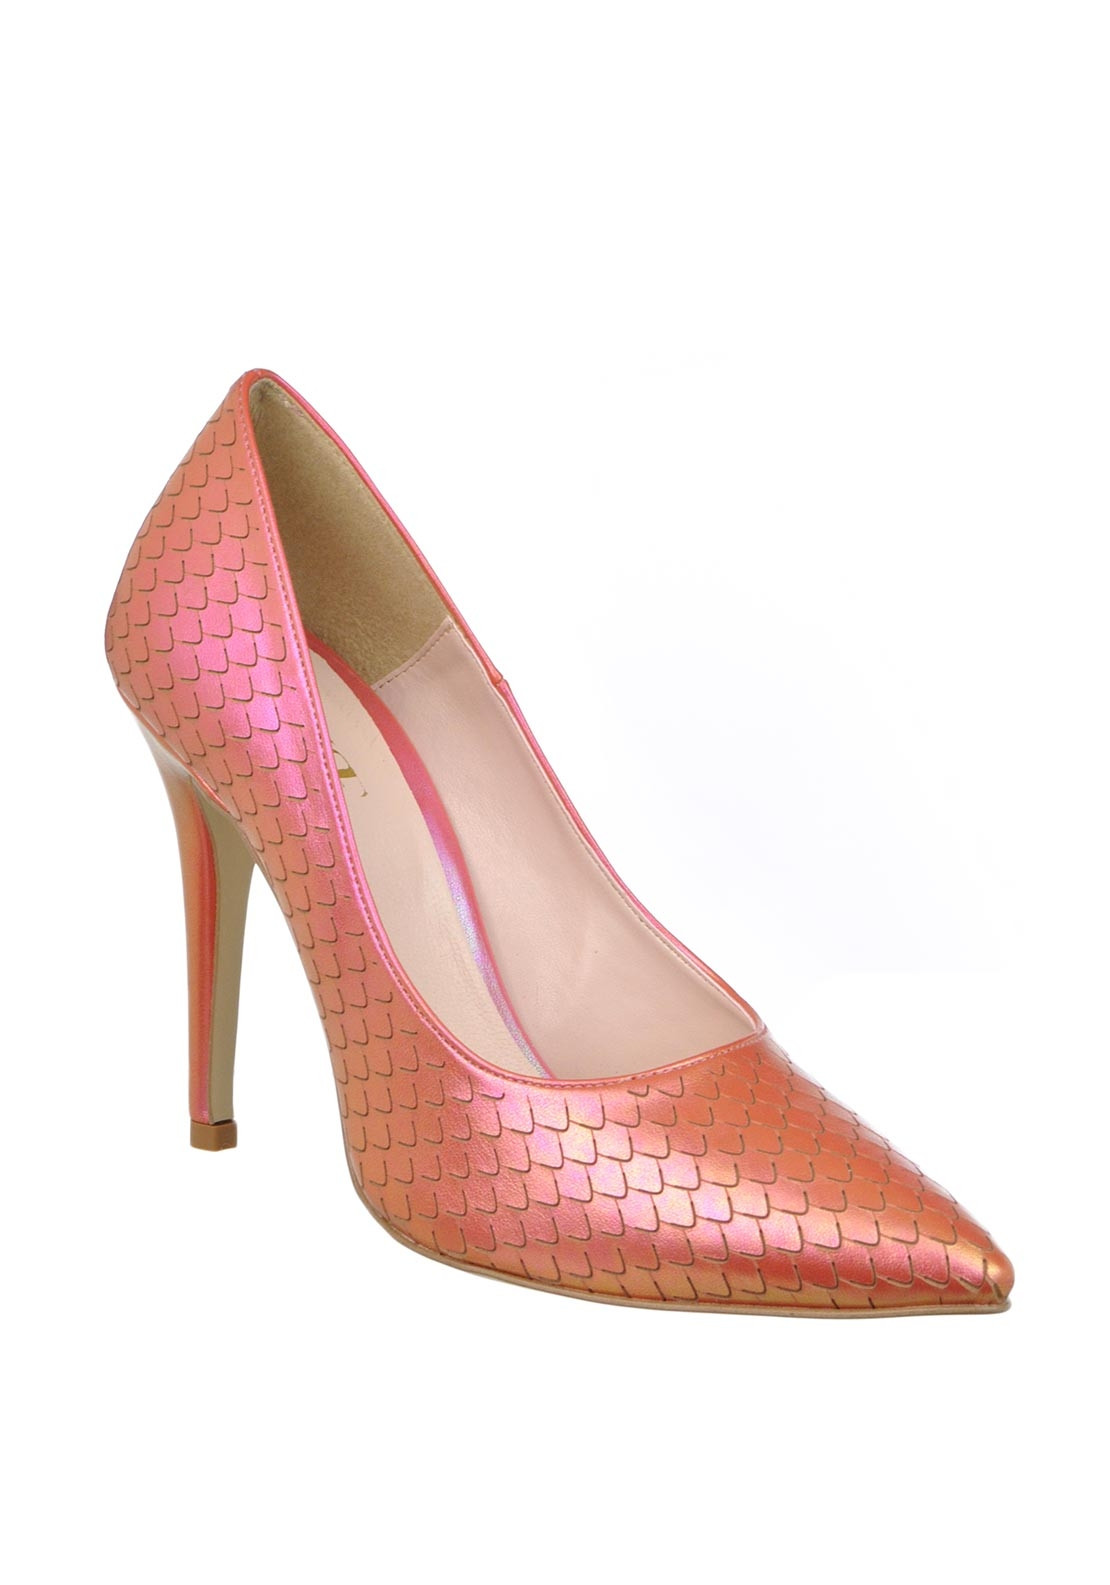 McElhinney's Shimmering Mermaid Print Pointed Toe Heeled Shoes, Pink